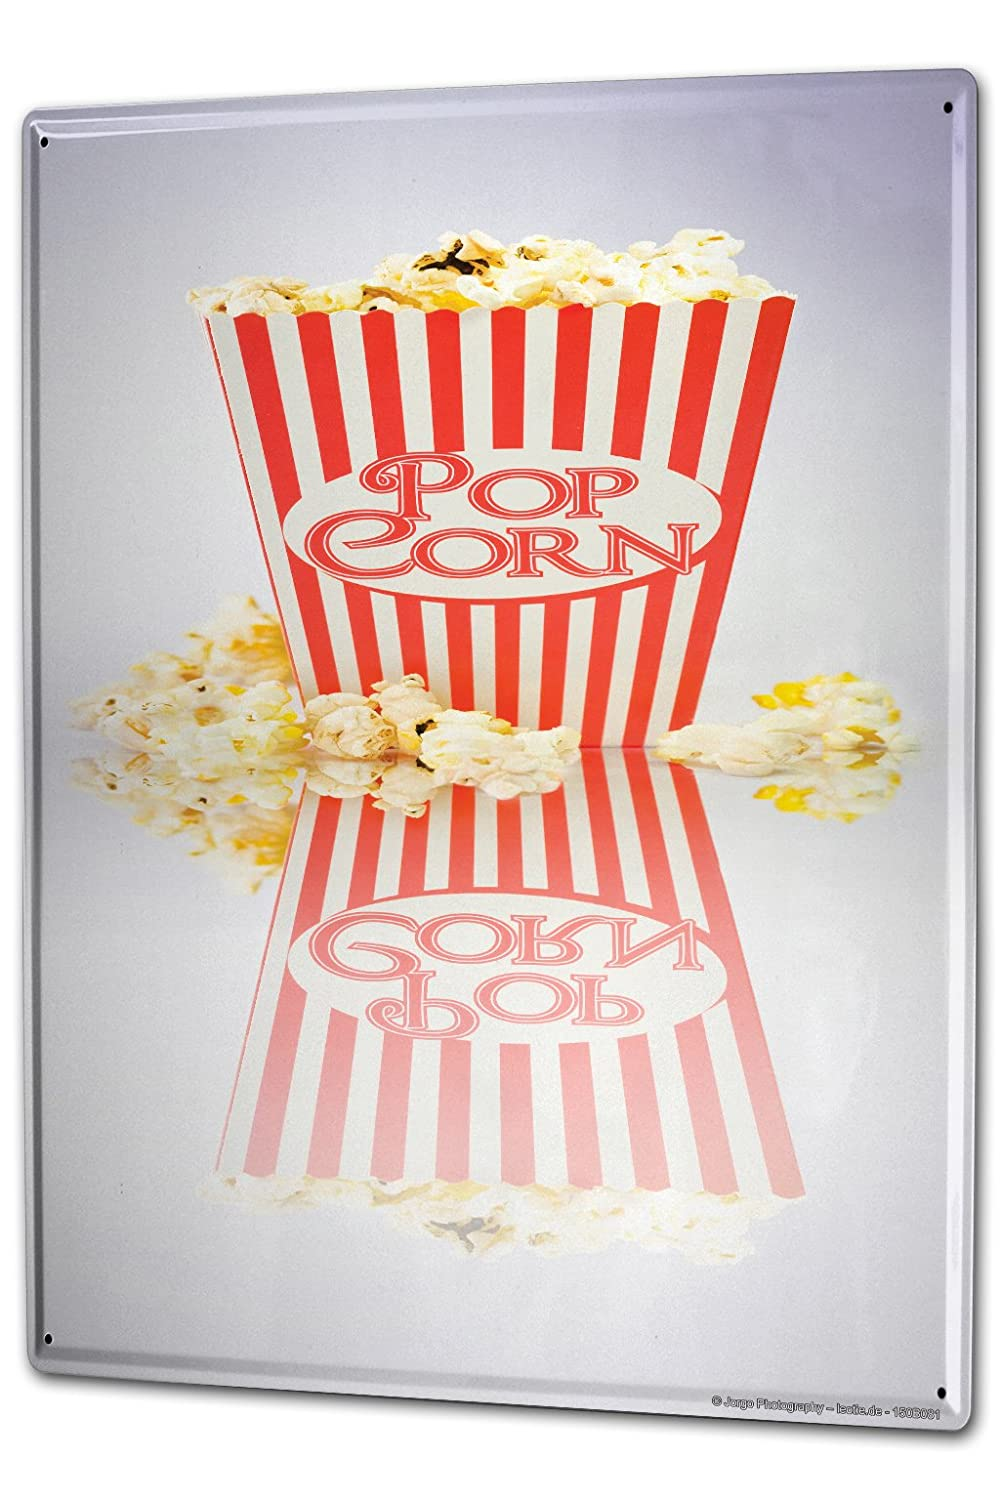 Tin Sign Jorgensen Photography Photo images popcorn red white cinema mirror 20x30 cm Large Metal Wall Decoration Vintage Retro Classic Plaque leotie fashion&lifestyle